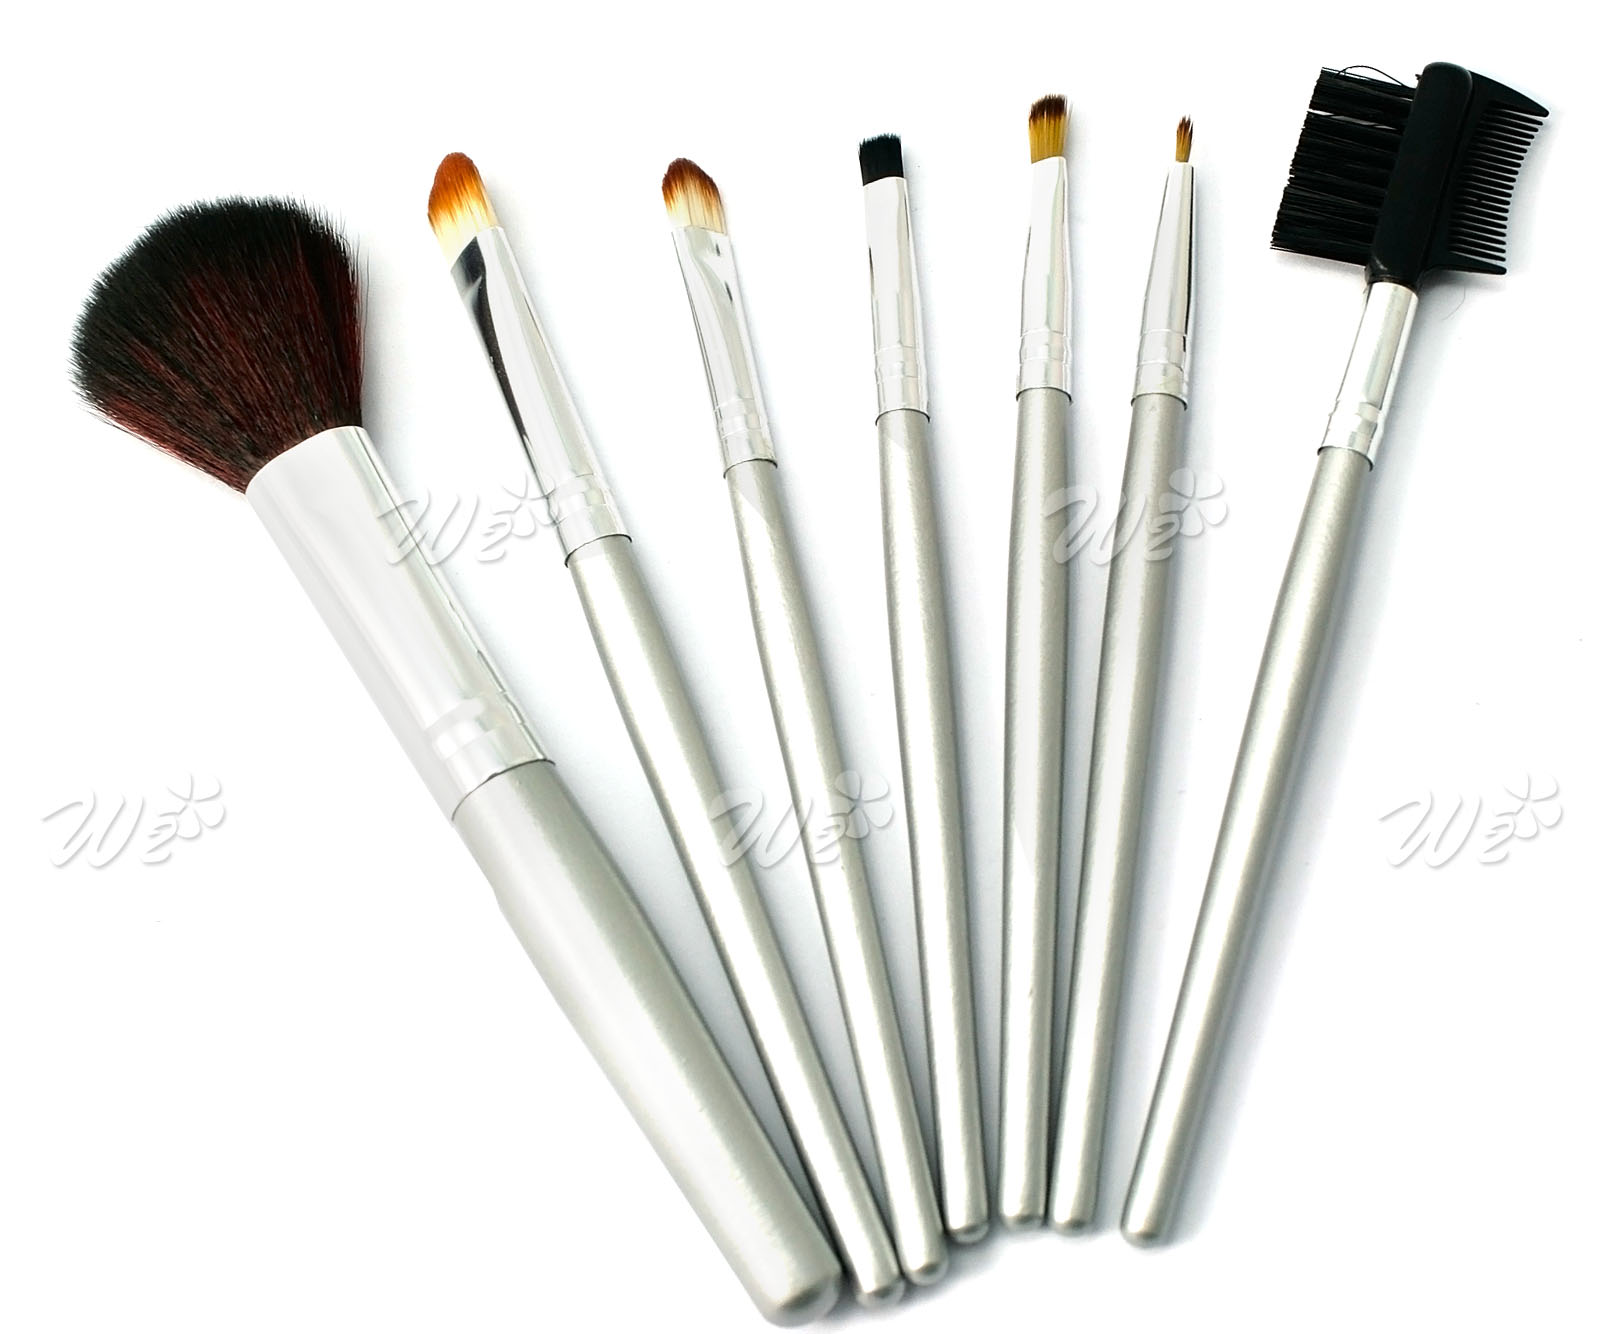 7 make up pinse mit tasche schminken pinselset kosmetik pinsel brush ebay. Black Bedroom Furniture Sets. Home Design Ideas